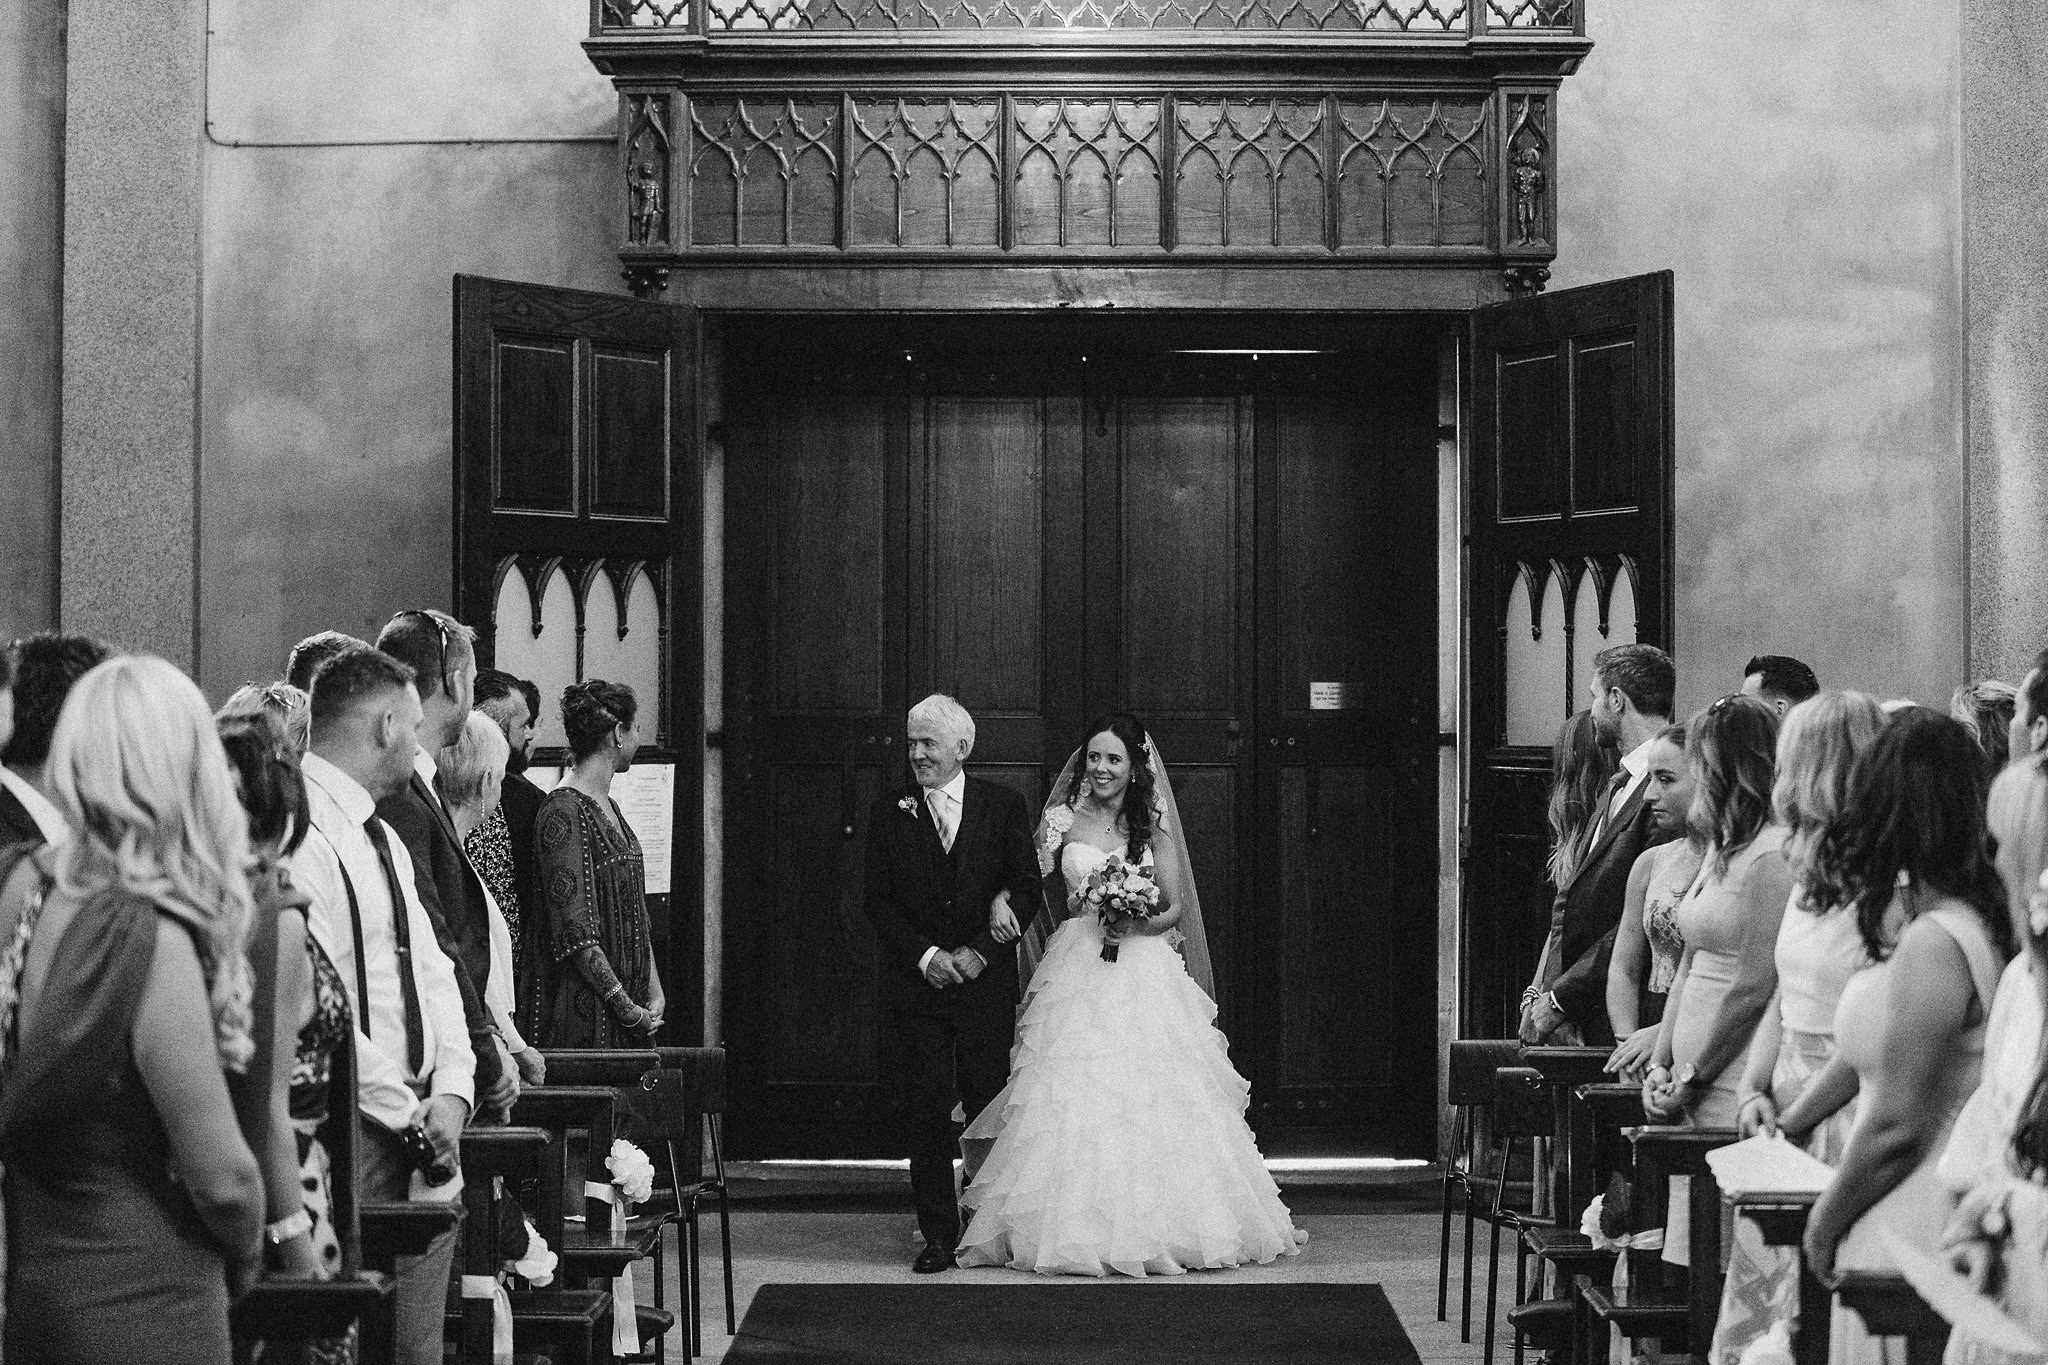 Orla stunned in a Paloma Blanca dress creation. I love this picture of her and her Dad about to take the walk.